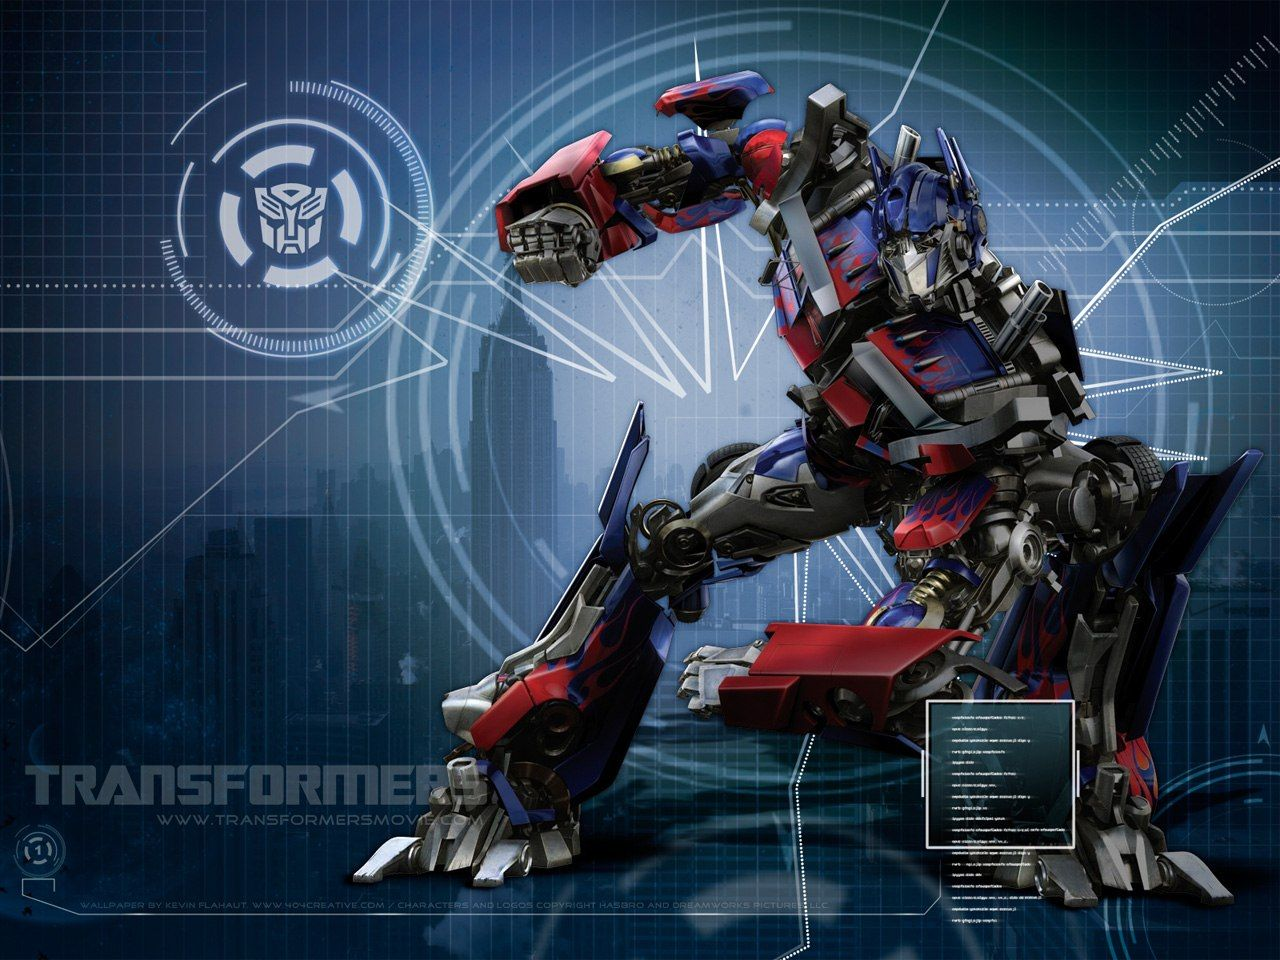 31 best we love transformers images on pinterest computers transformers free wallpaper cartoon wallpapers transformers 6 amipublicfo Choice Image